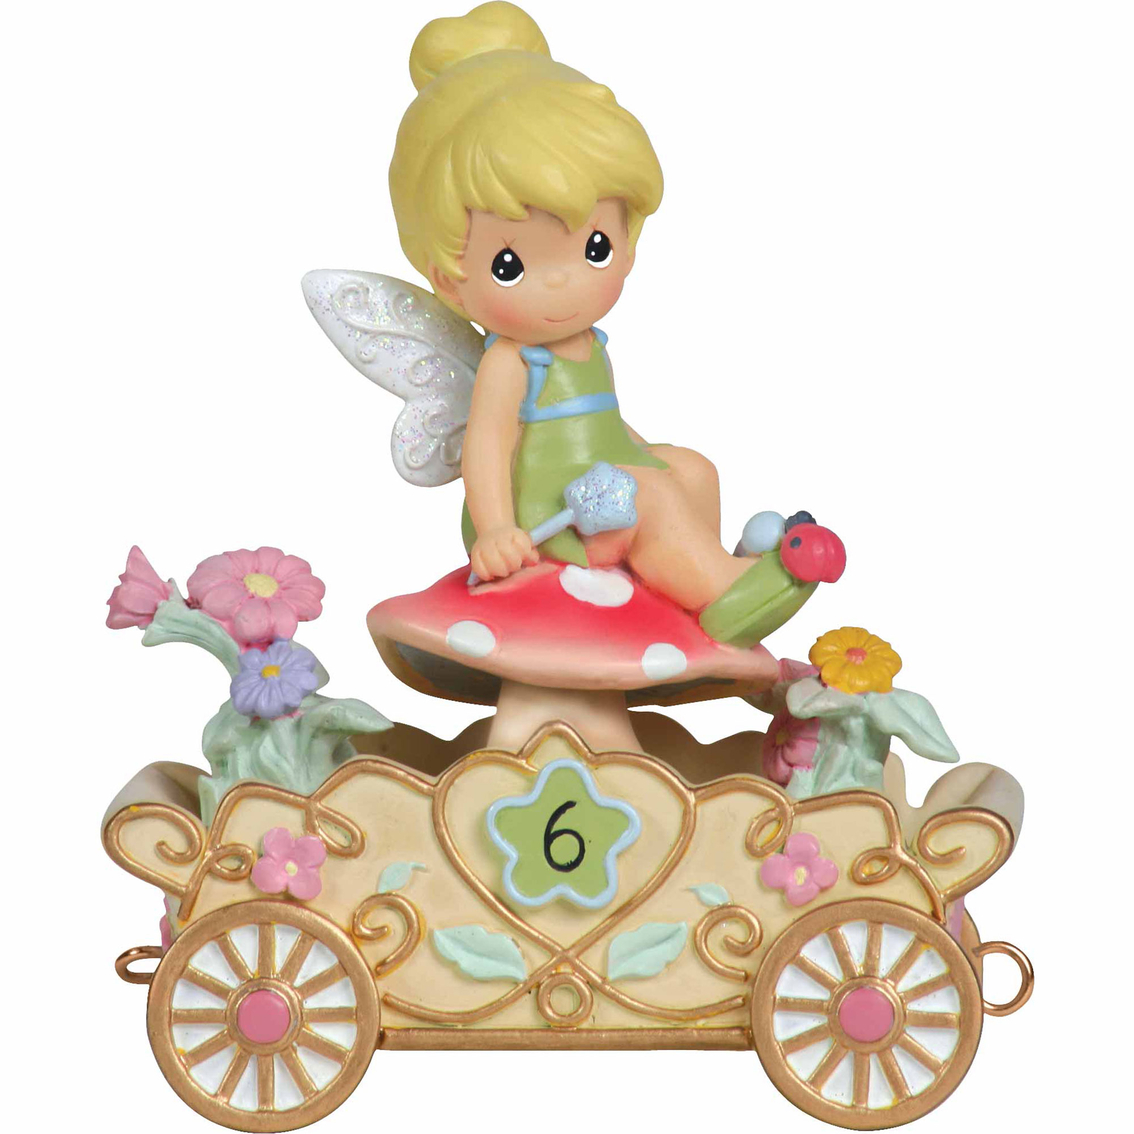 Precious Moments Disney's Tinker Bell Birthday Parade Age 6 Figurine |  Collectible Figurines | Food & Gifts | Shop The Exchange